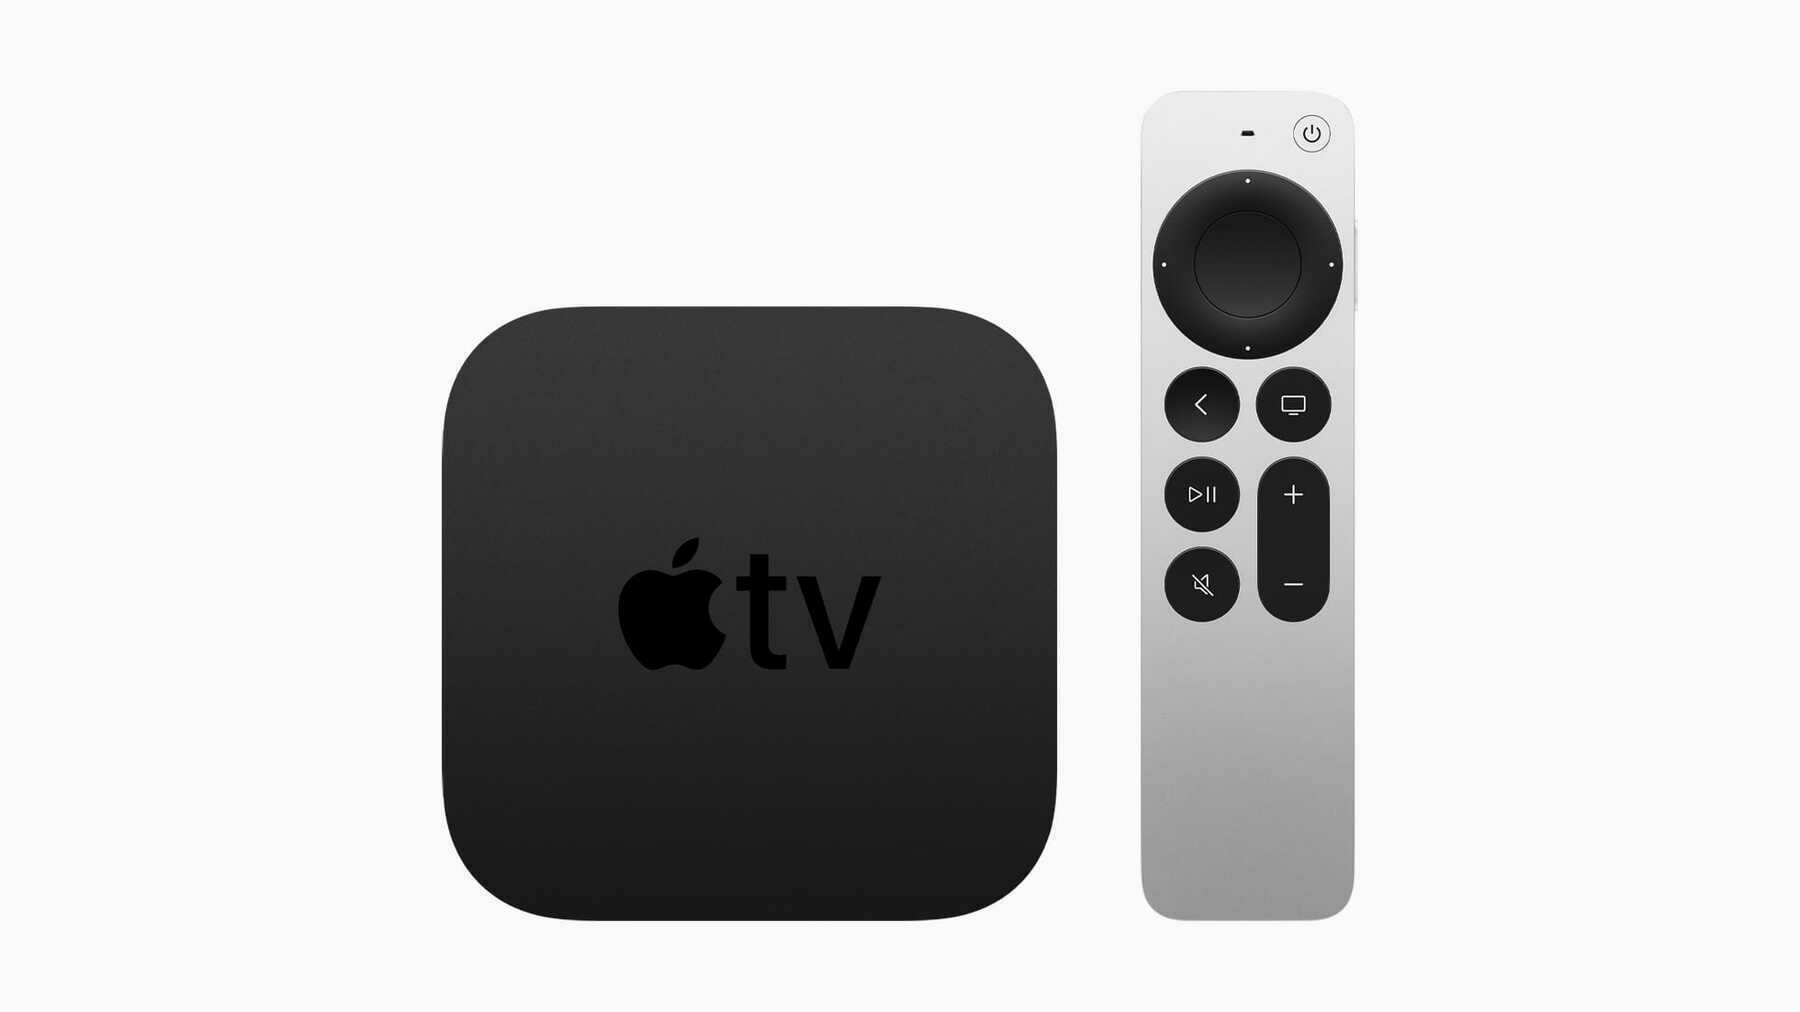 The updated Apple TV 4K with the new Siri Remote.